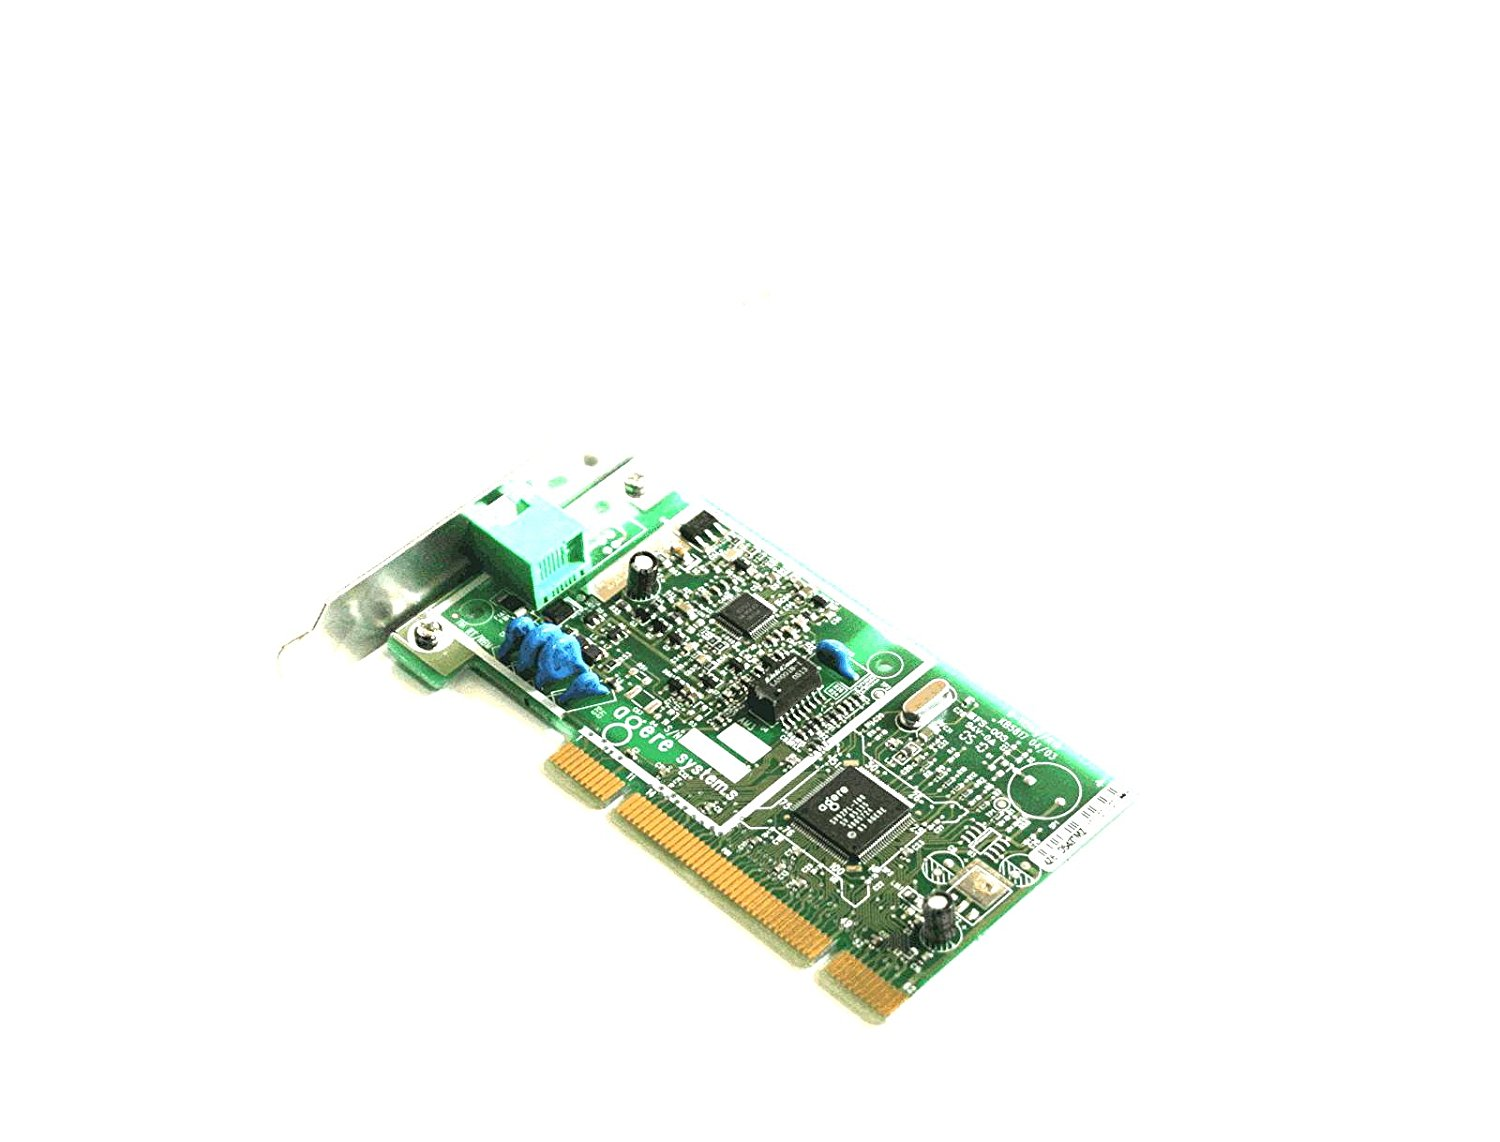 HP Compaq d530 Agere Modem Driver for Windows 7